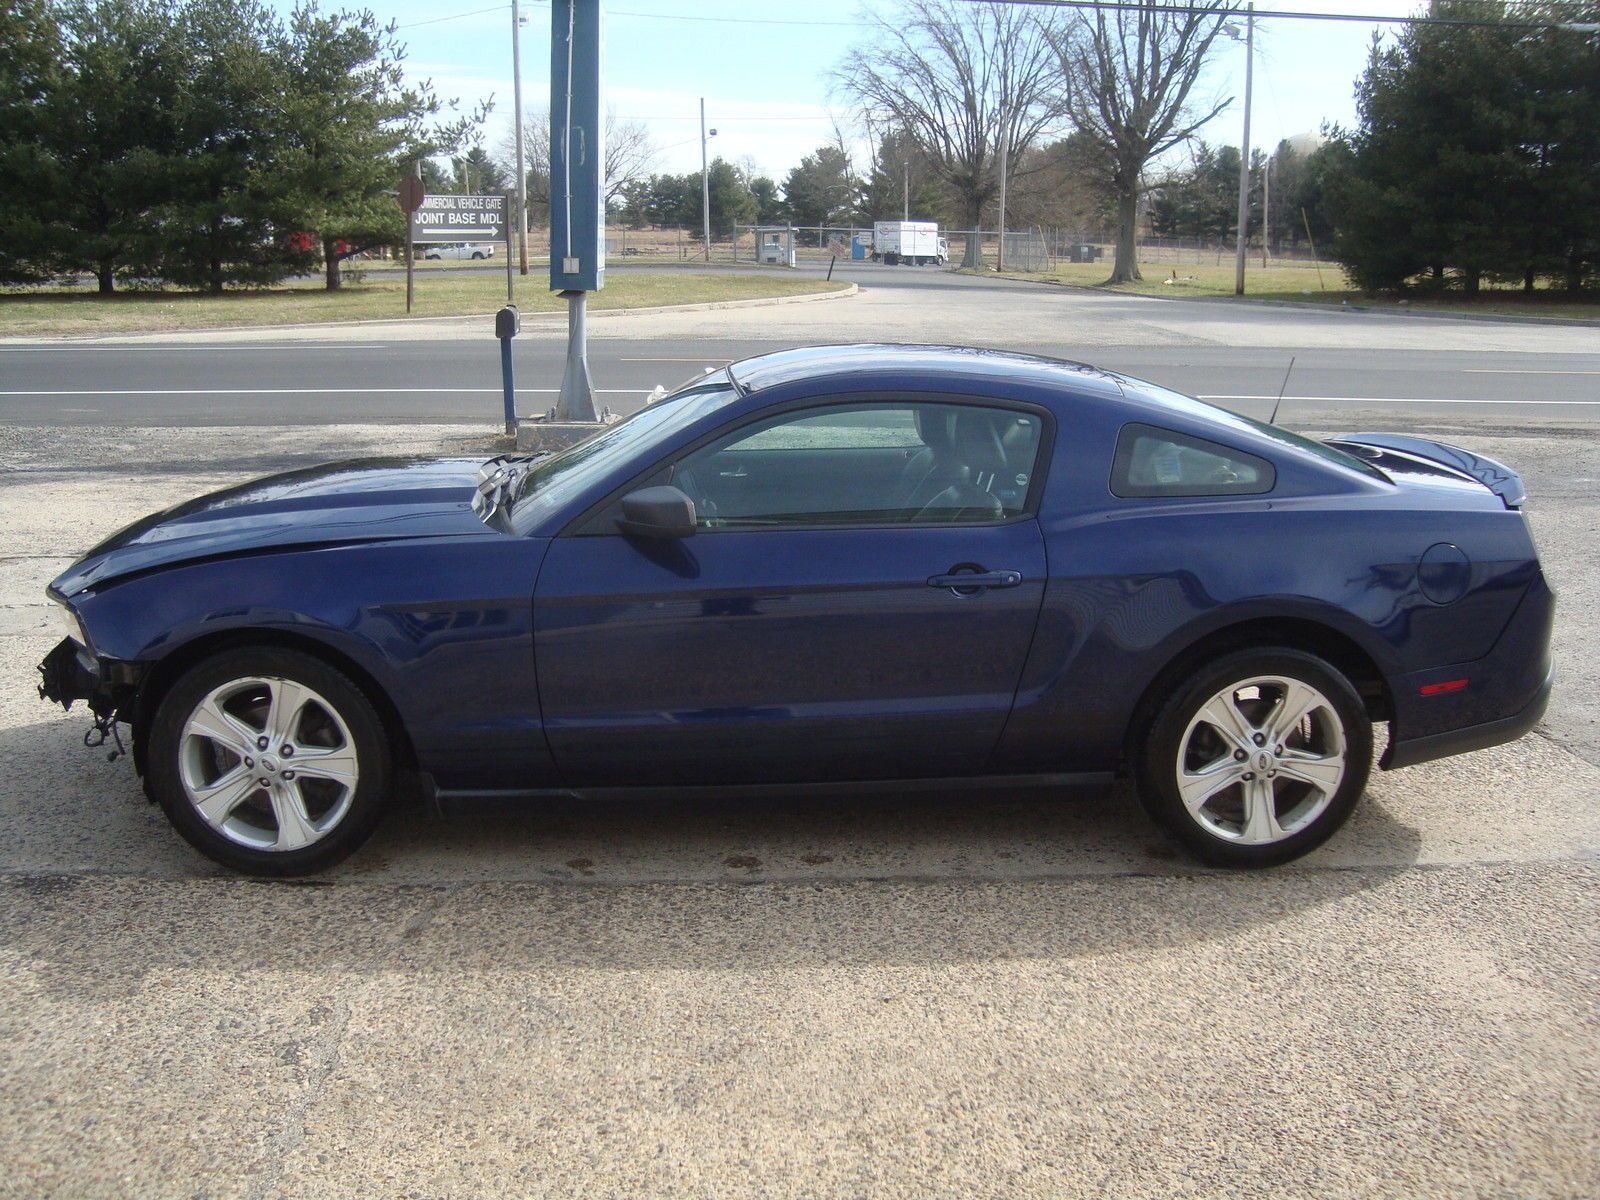 2010 Ford Mustang V6 Automatic Salvage Rebuildable | Wrecked sport ...